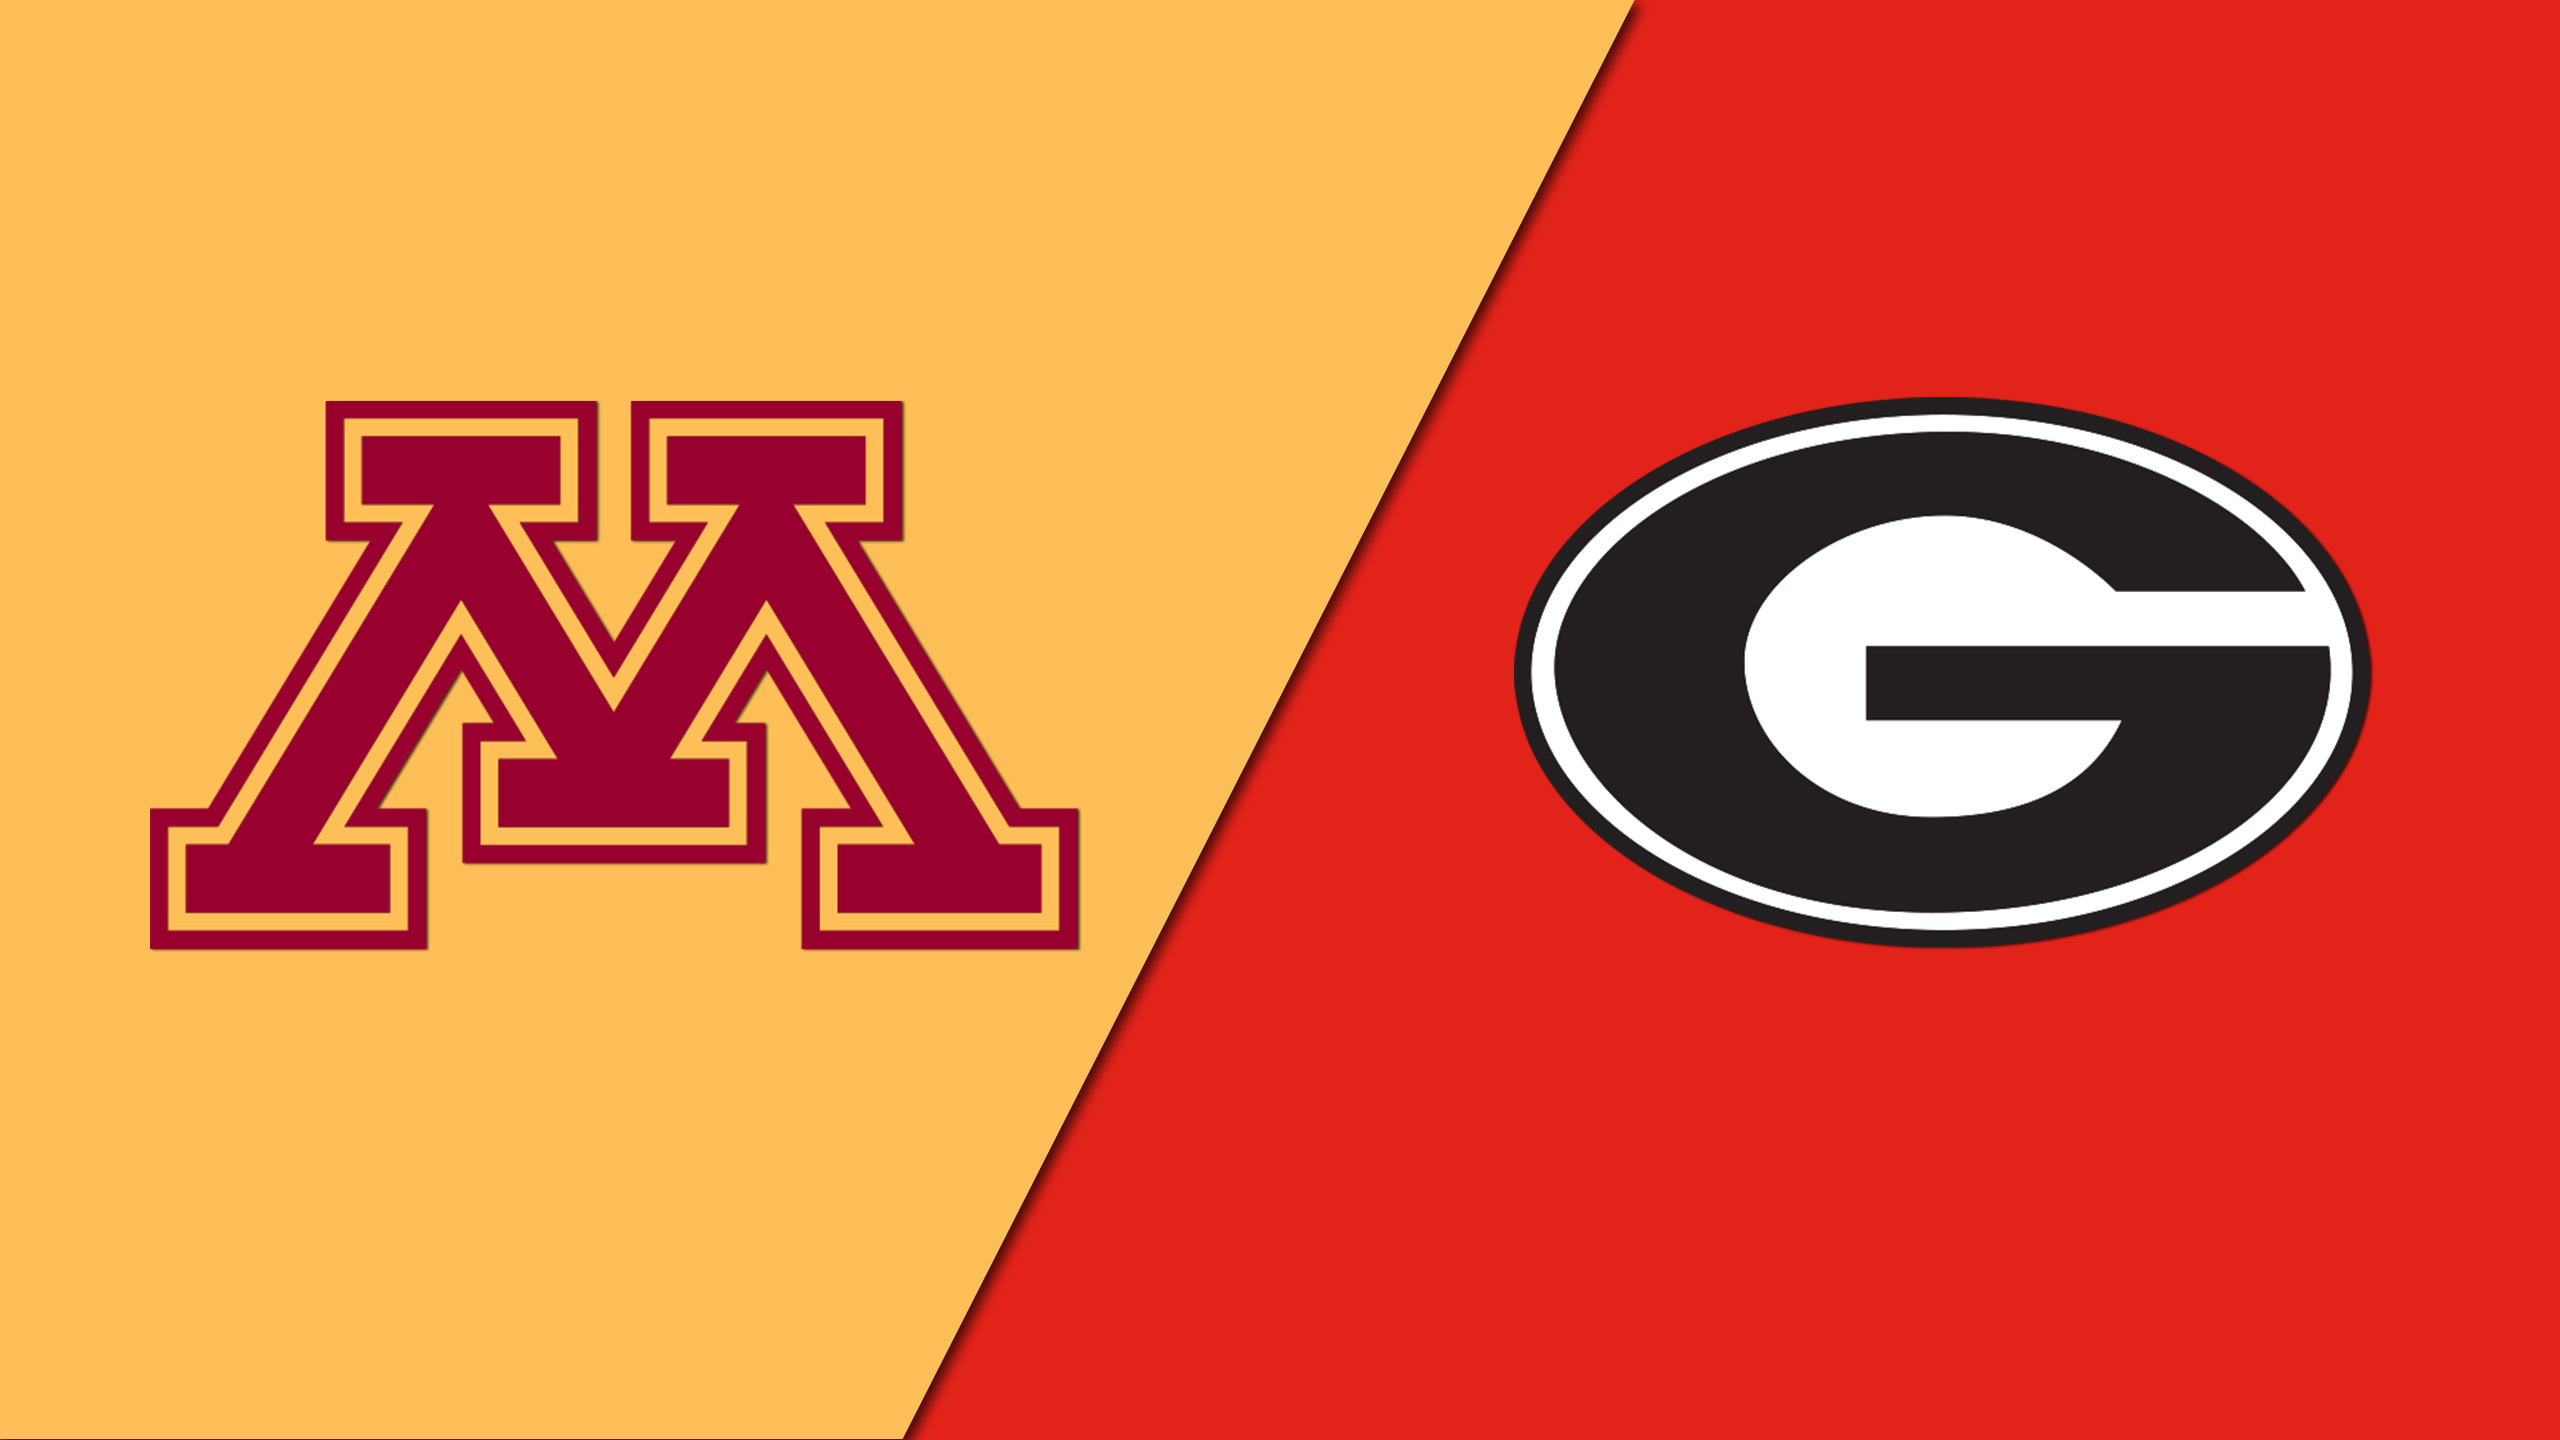 Minnesota vs. Georgia (Site 6 / Game 6)